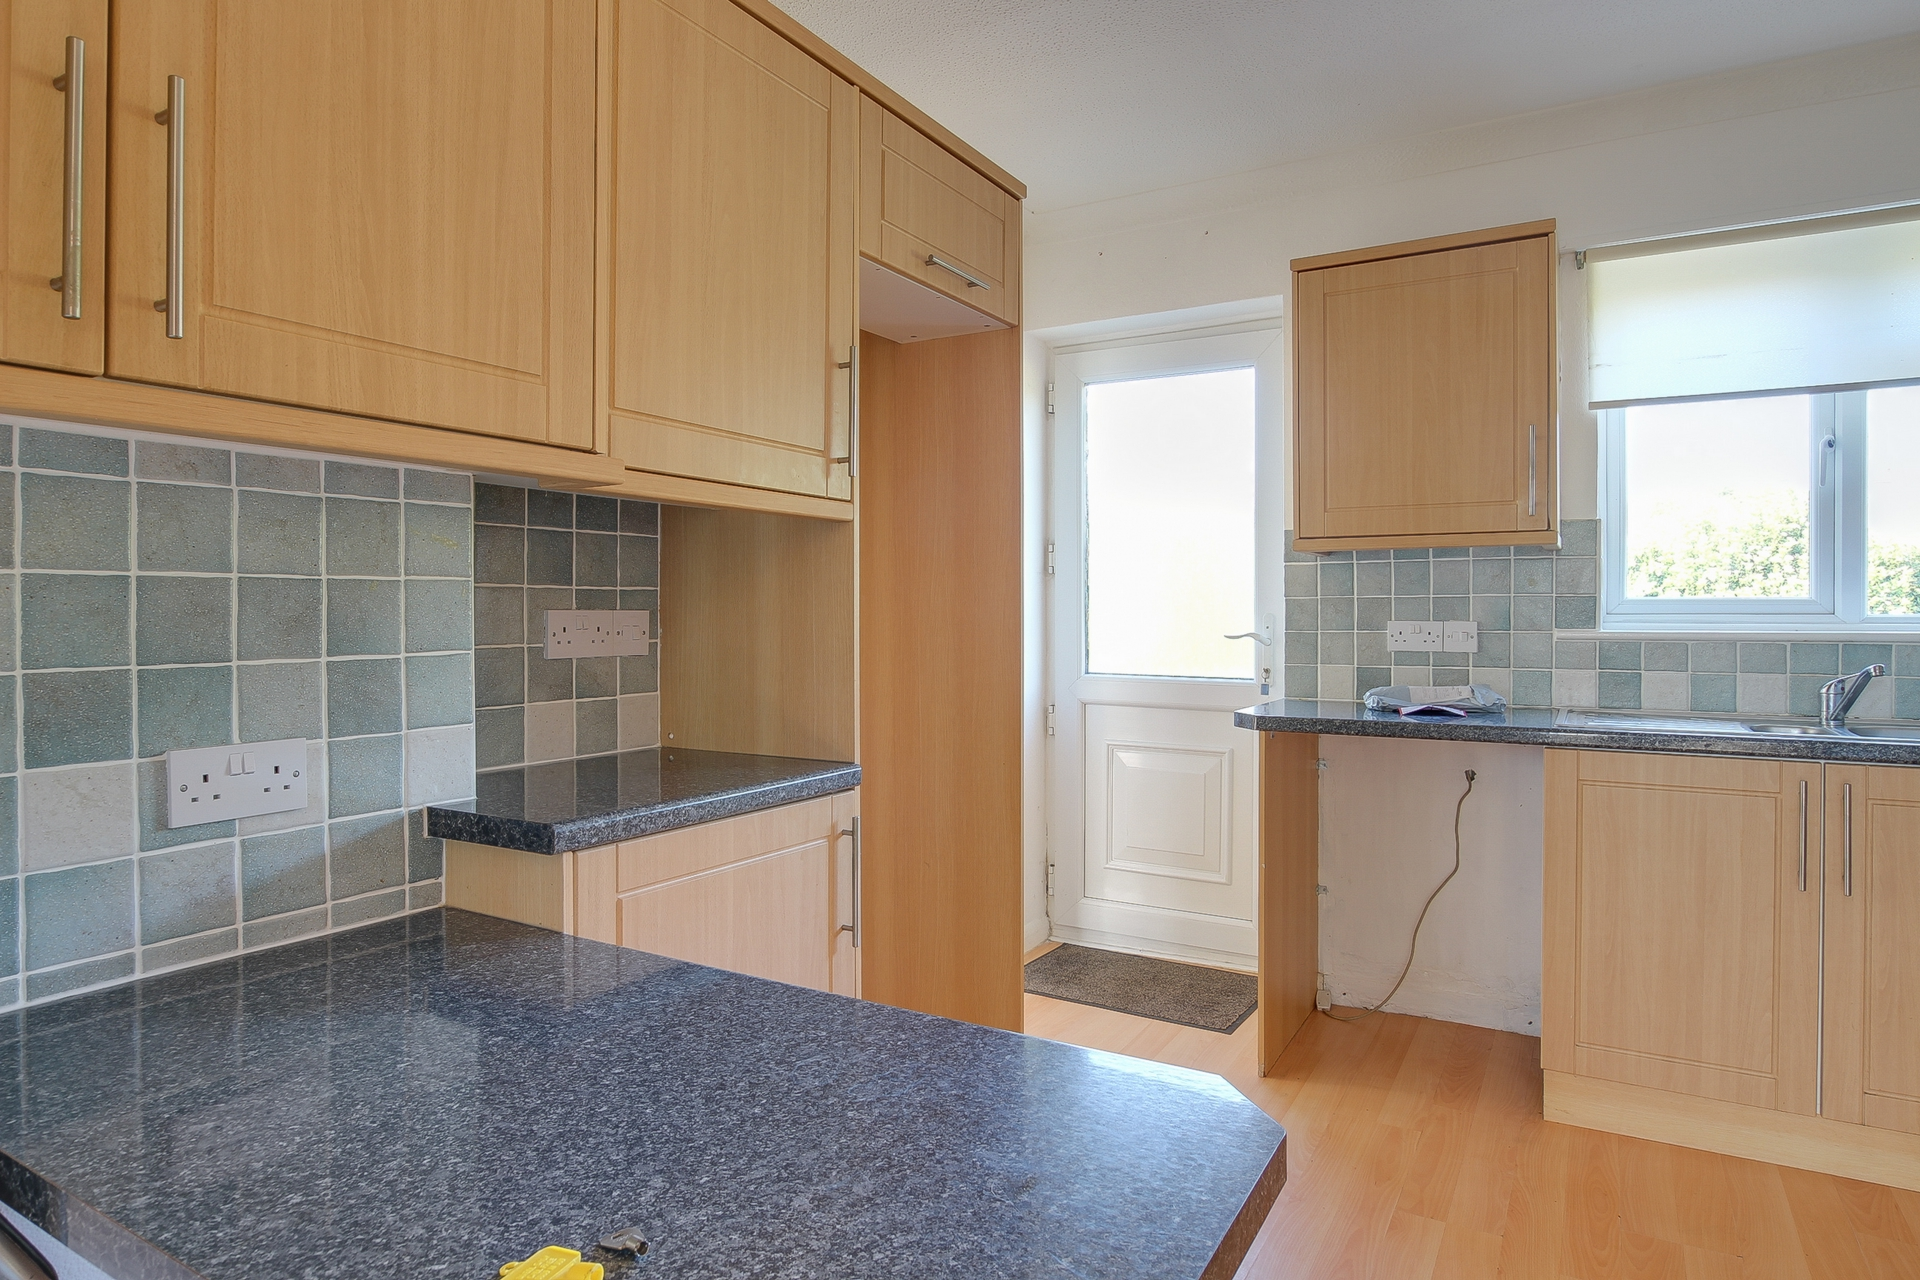 3 bed bungalow to rent in Cheesmans Close, Minster, CT12  - Property Image 3